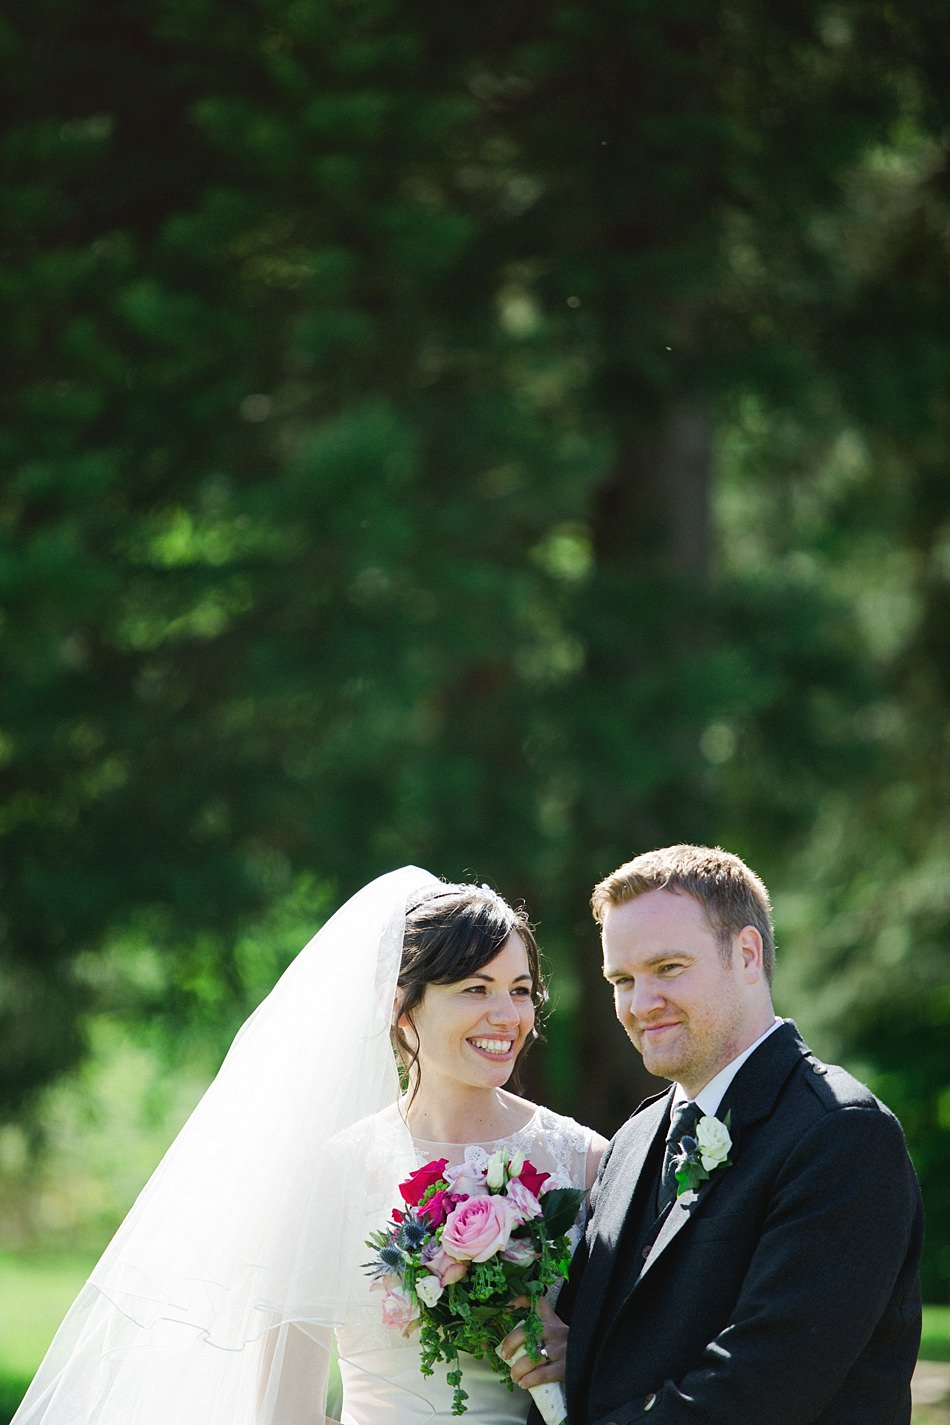 wedding dumfries house 4-2.jpg